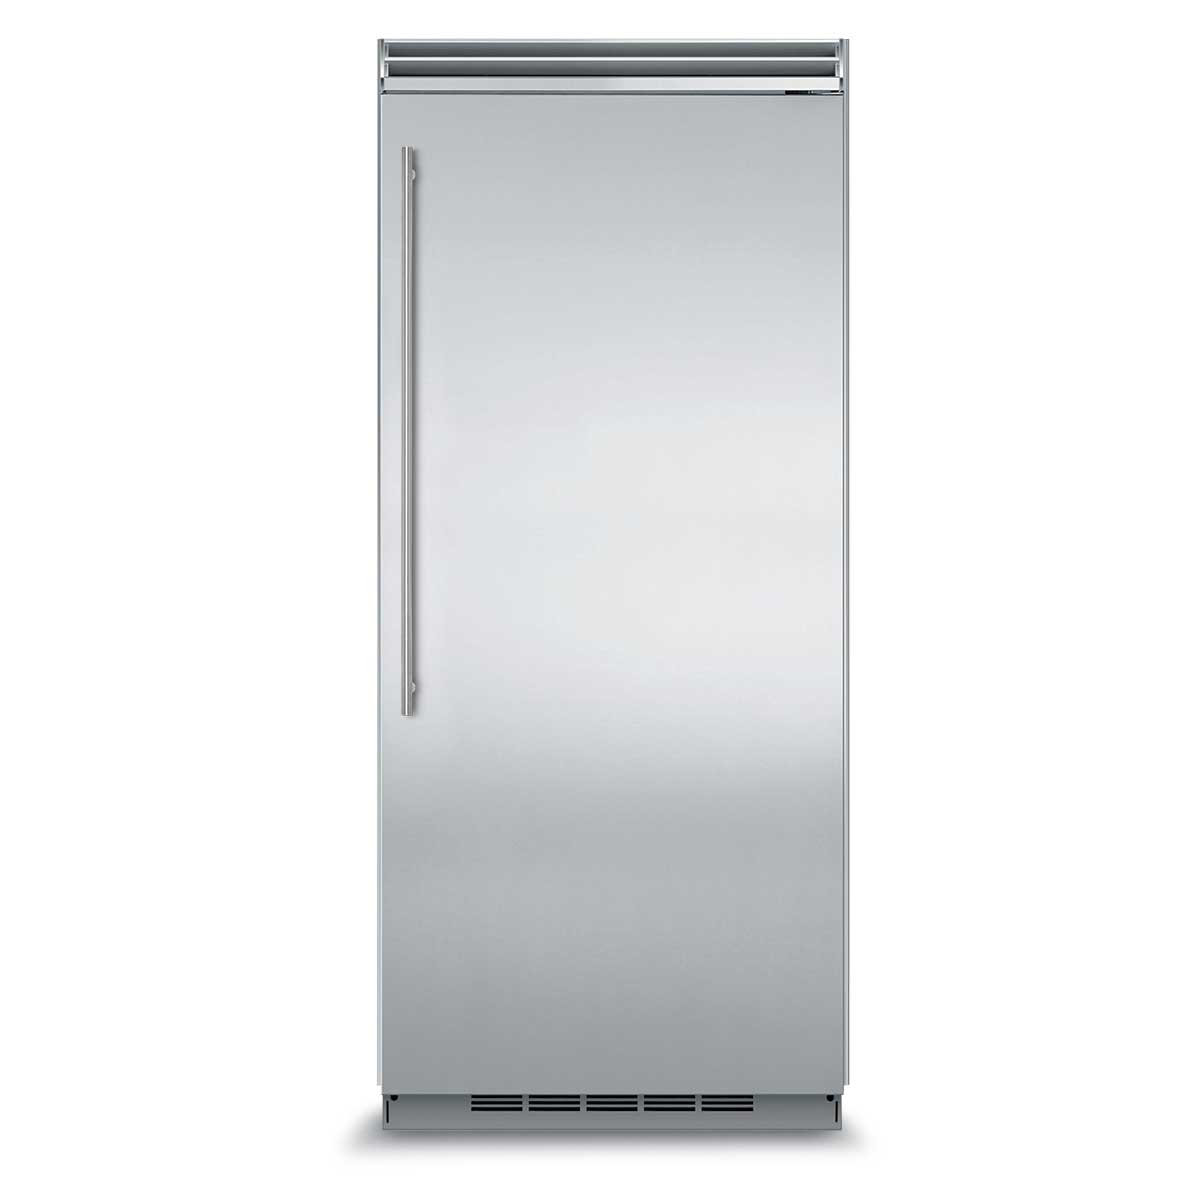 "Marvel  Marvel Professional Built-In 36"" All Refrigerator- Solid Stainless Steel Door   Right Hinge, Slim Designer Handle"